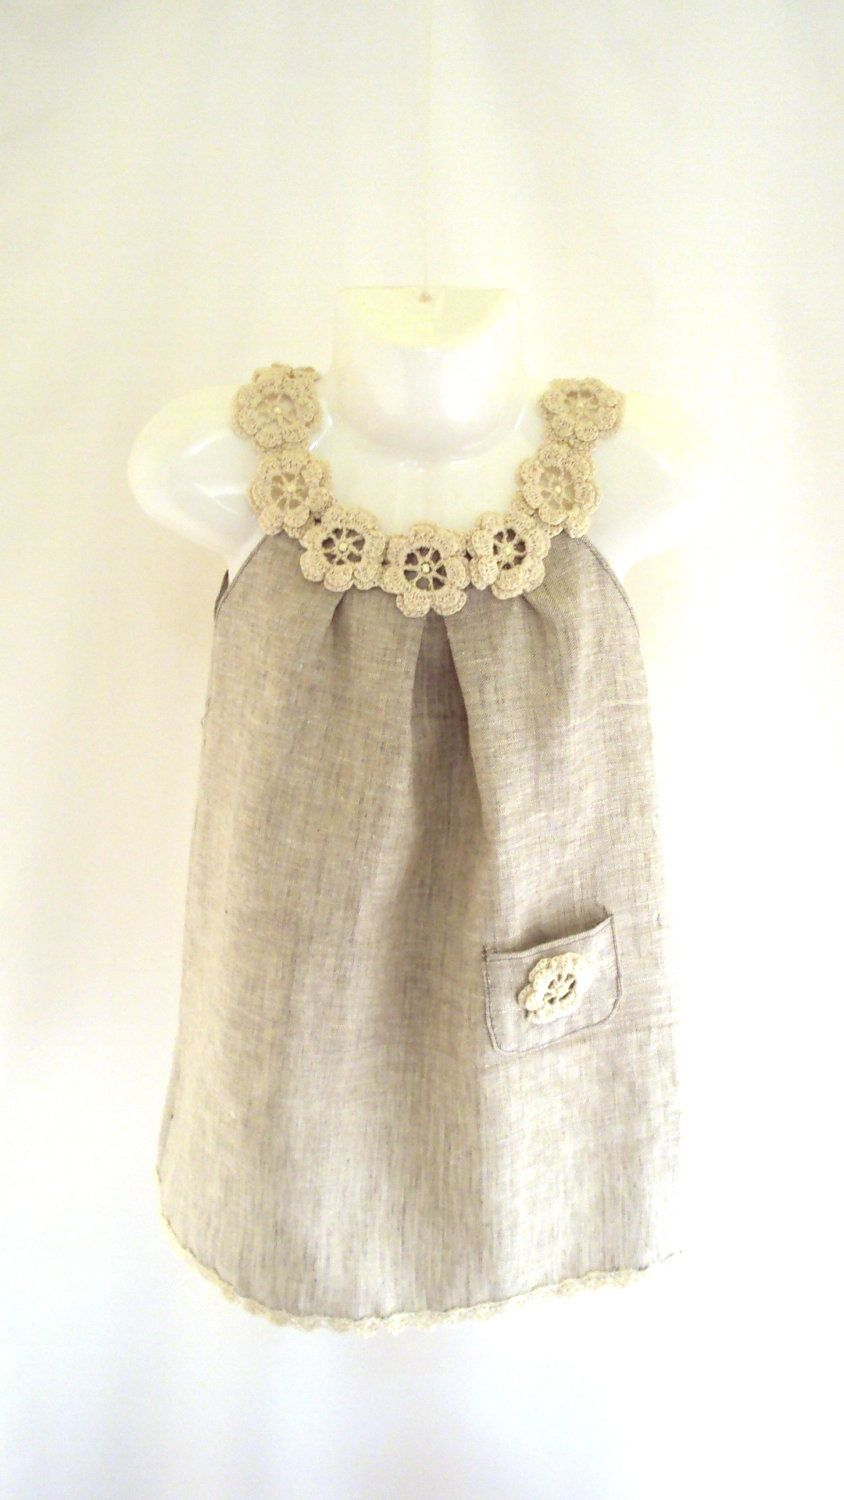 Linen organic flower dress / tunic crochet / sew   for the baby / toddlers / girl of any size. $40.00, via Etsy.